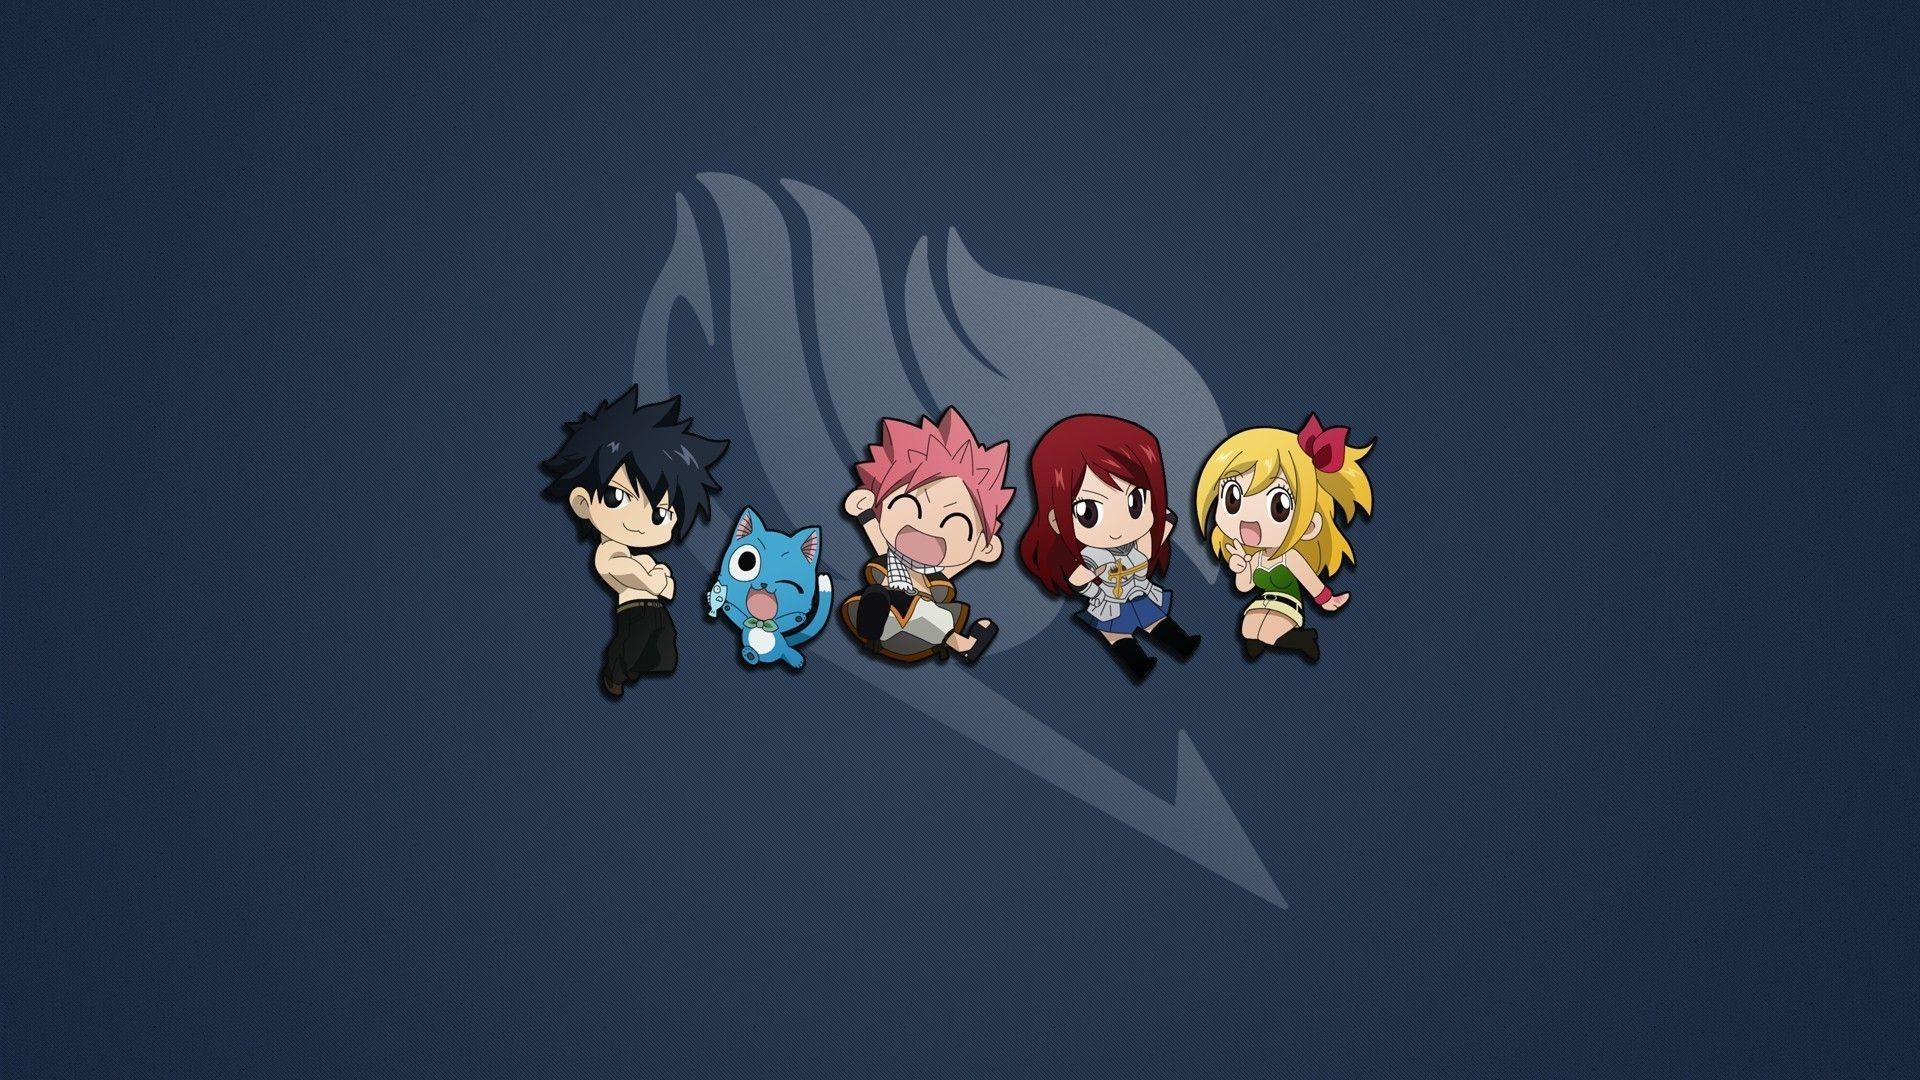 1920x1080 Fairytail Anime Wallpapers (33 Wallpapers)